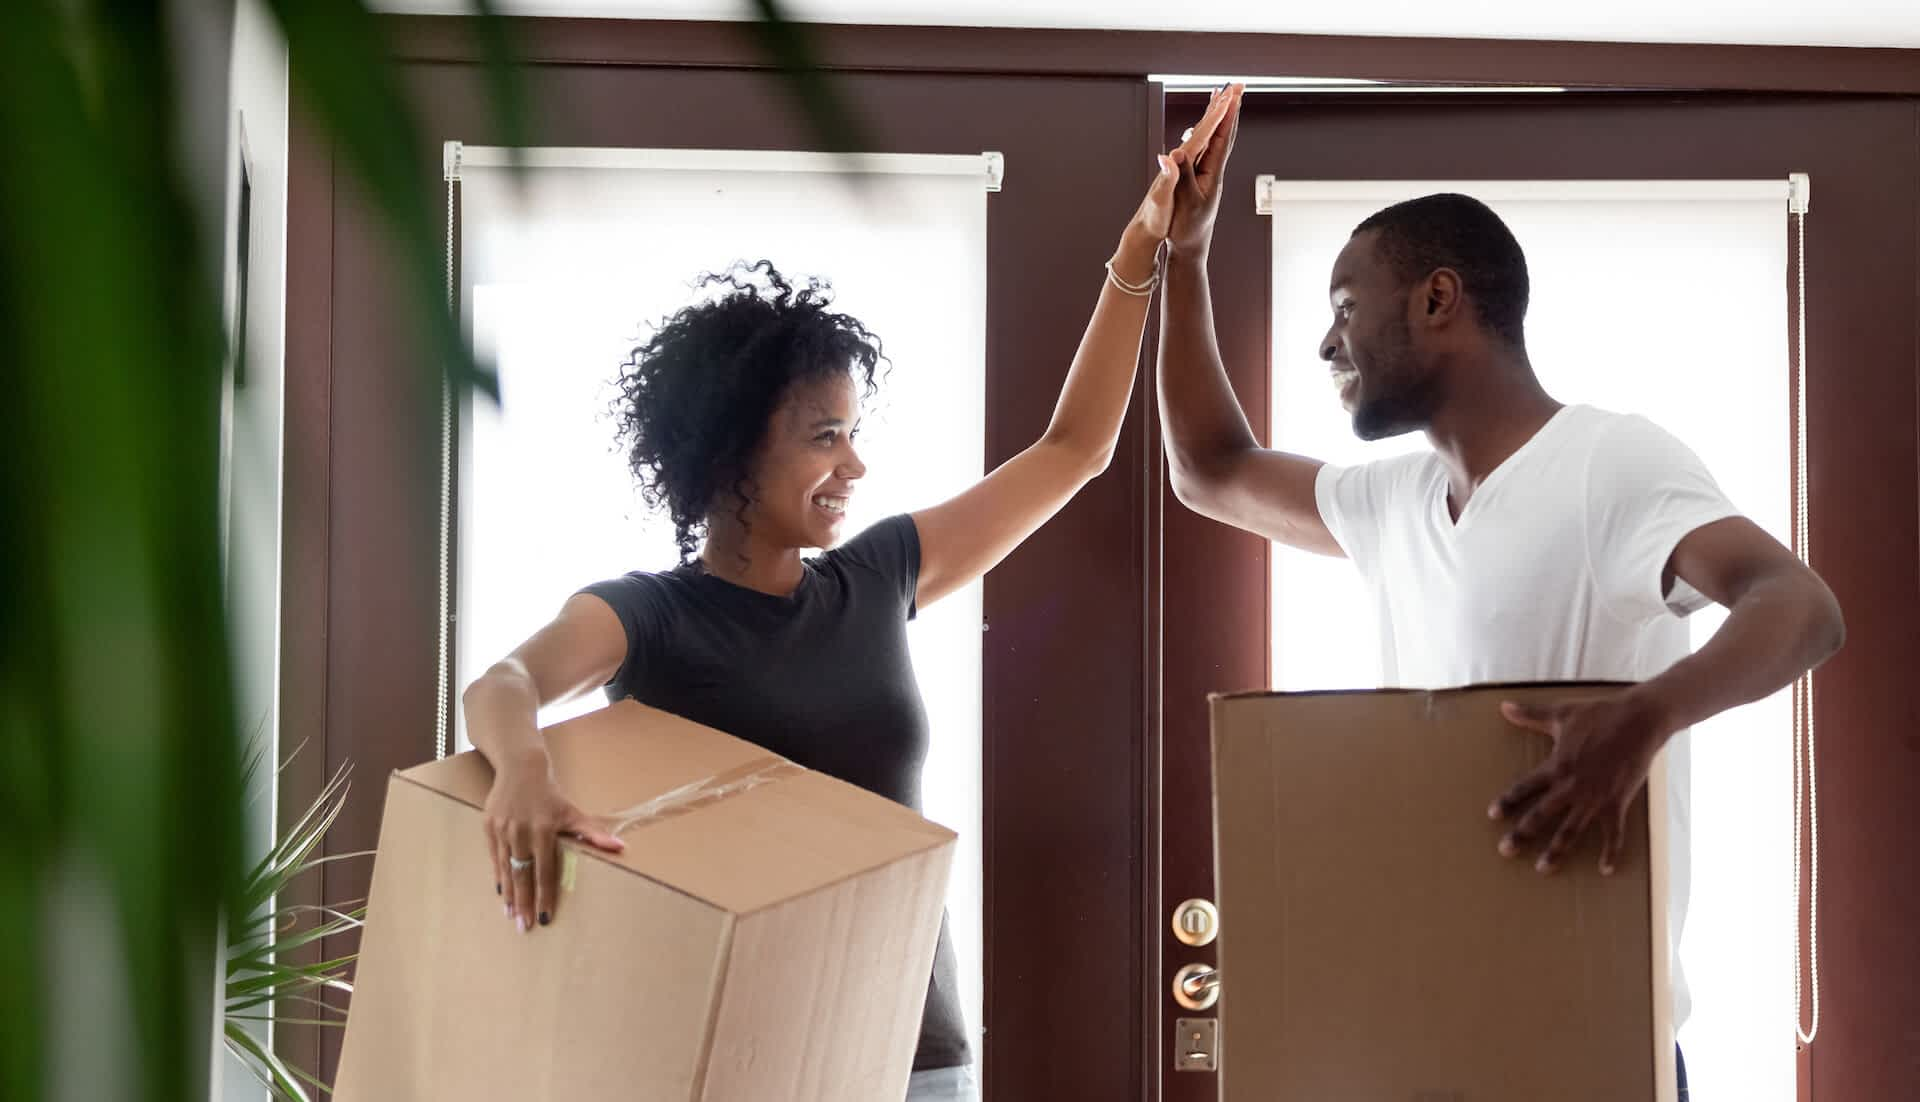 renting a property, Couple holding a key to their home, travel, Expatriate, African Expatriate, Black Expatriate, Expatriate Community, Black Expatriate Community, Expats, Black Expats, Other Expats, African Expats Community, Black Expat Community, Running, Expat Health, Expat Fitness, African Community Malaysia, Expat Community Malaysia, Nigerians Malaysia, Black People Community, Black People Malaysia, African Workers Malaysia, Black Workers Malaysia, Malaysia